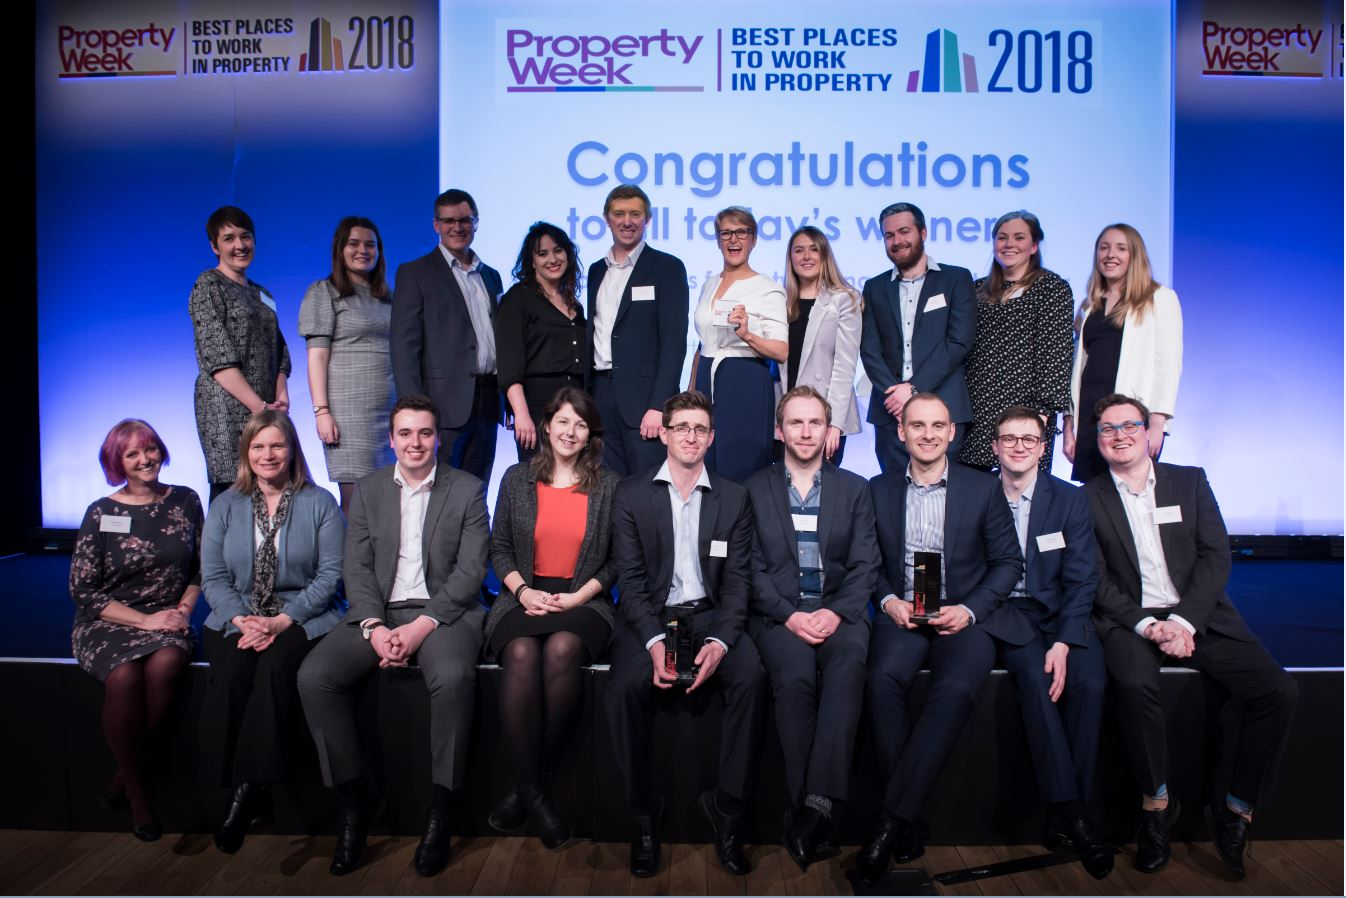 Carterwood named one of the best places to work in property